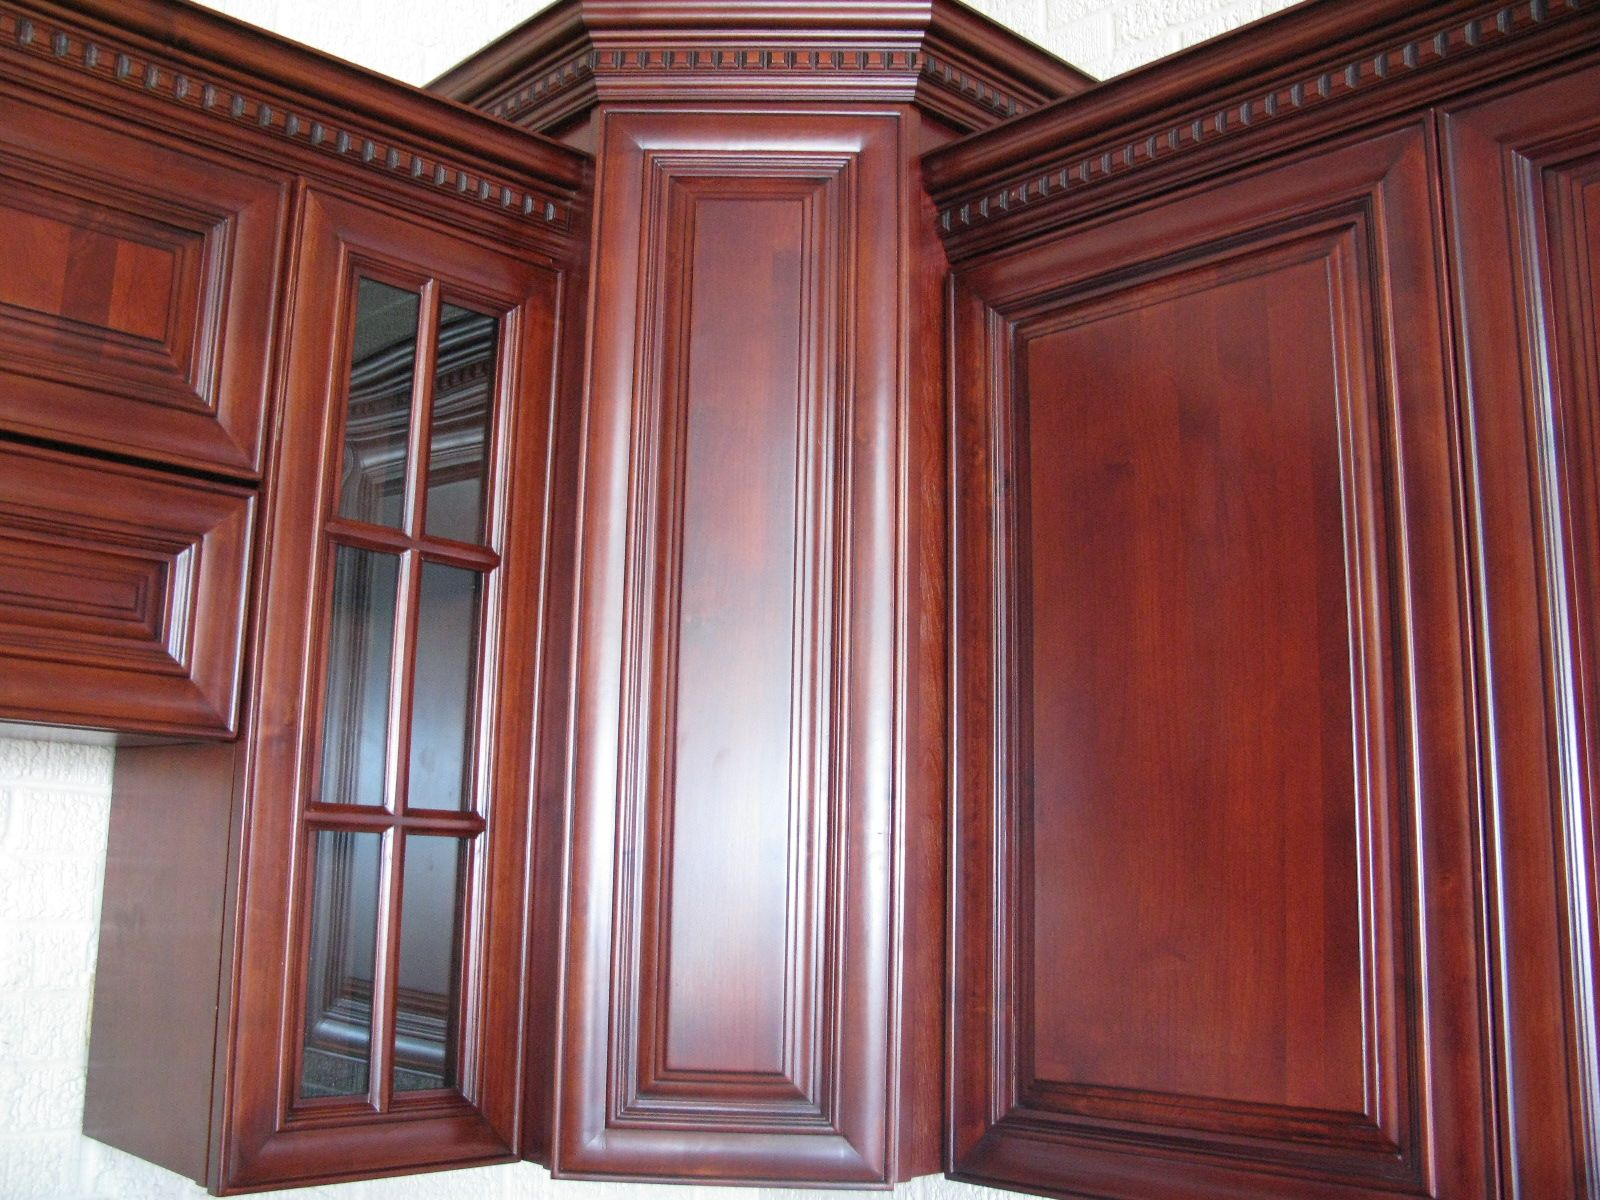 Cherry Kitchen Cabinet Doors Cherry Maple Cabinets Crown Molding With Dentil Detail